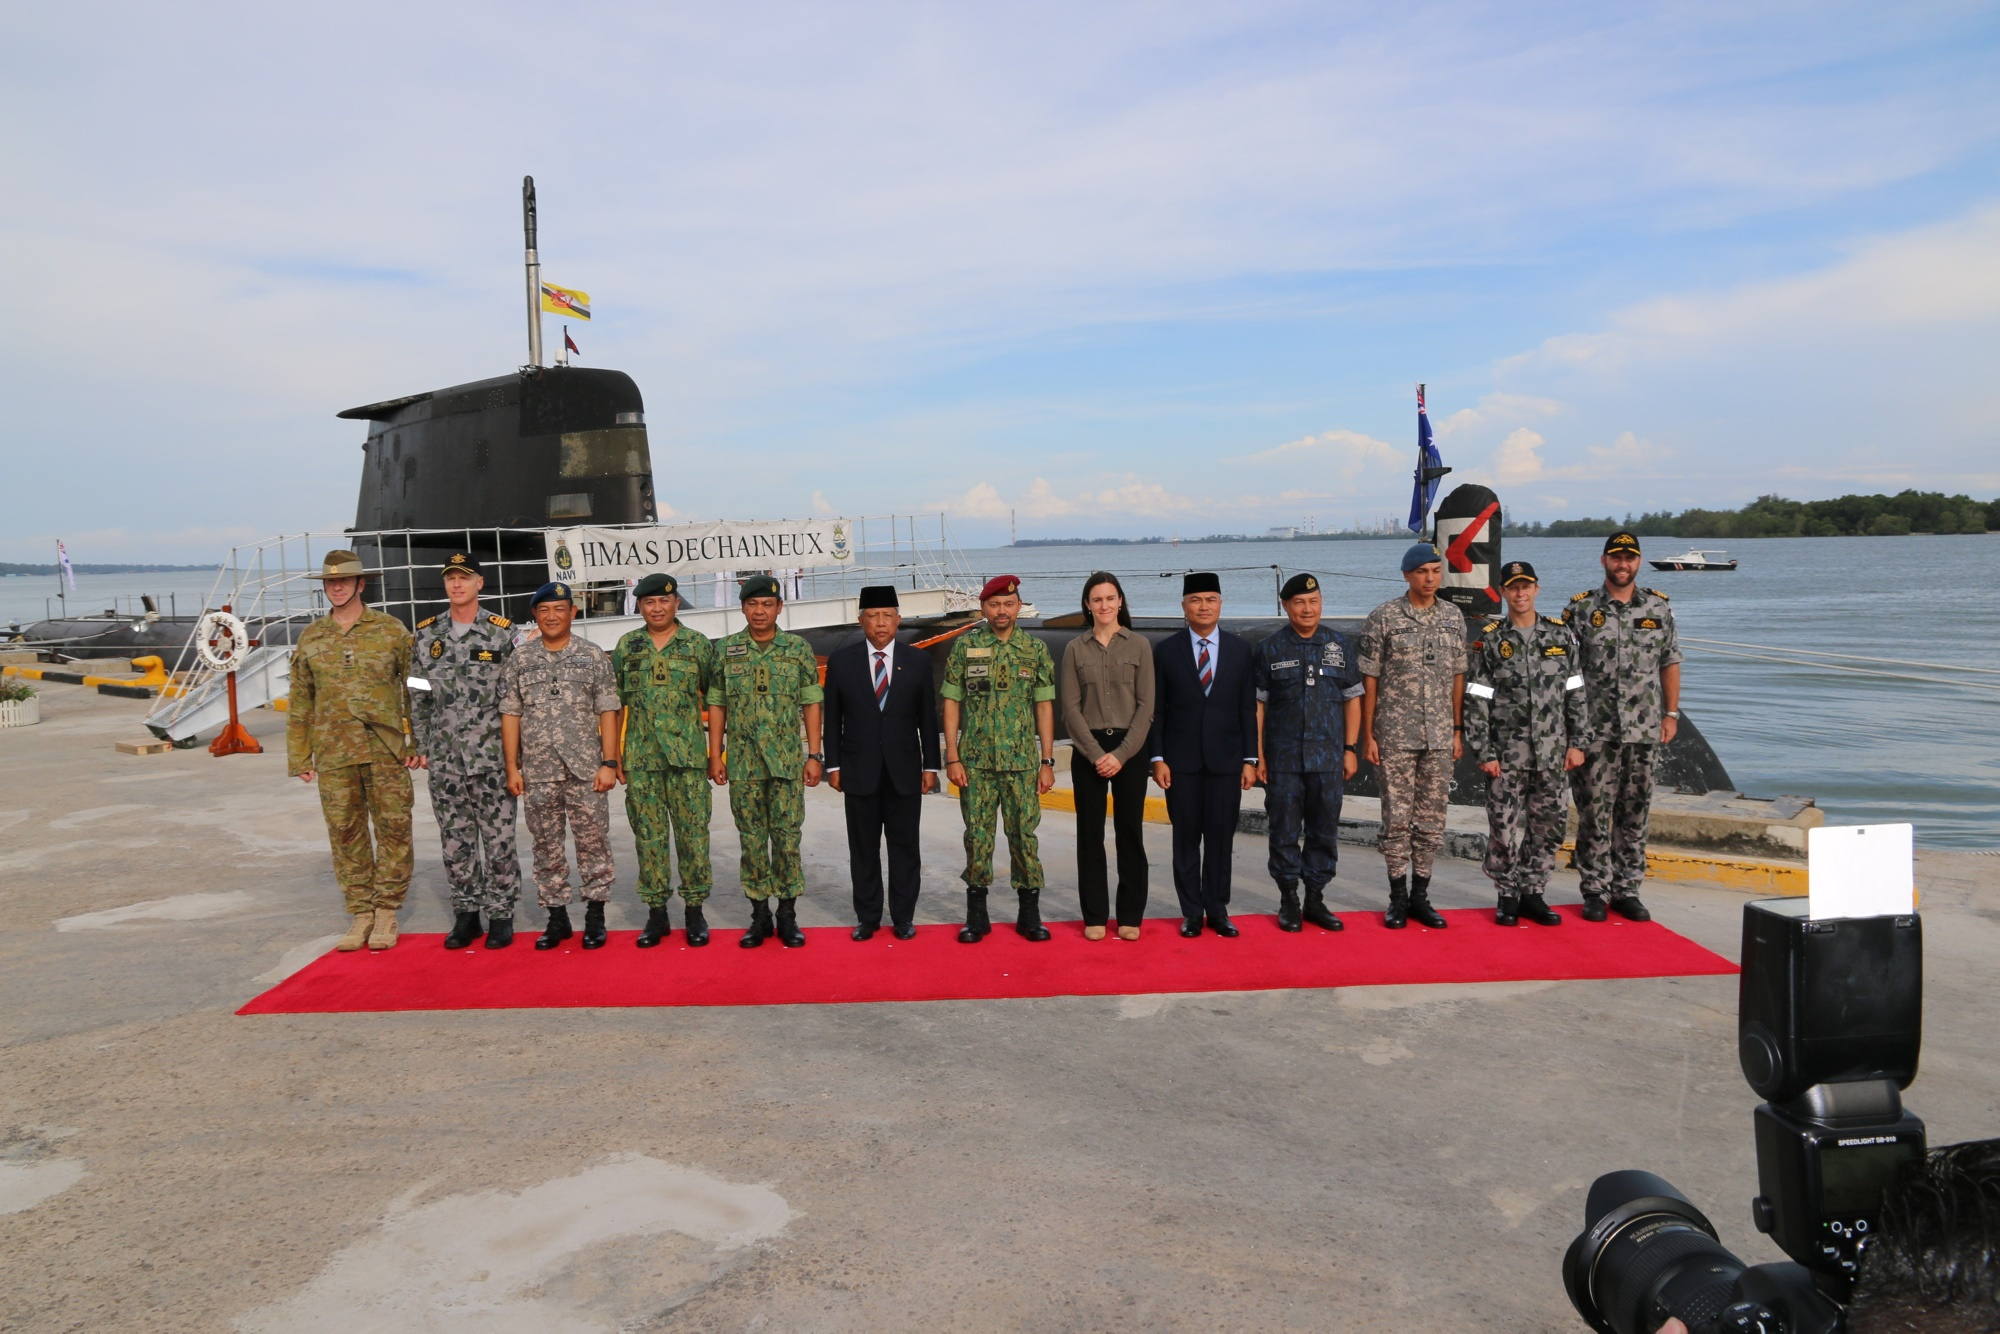 Inaugural visit to Brunei by HMAS Dechaineux